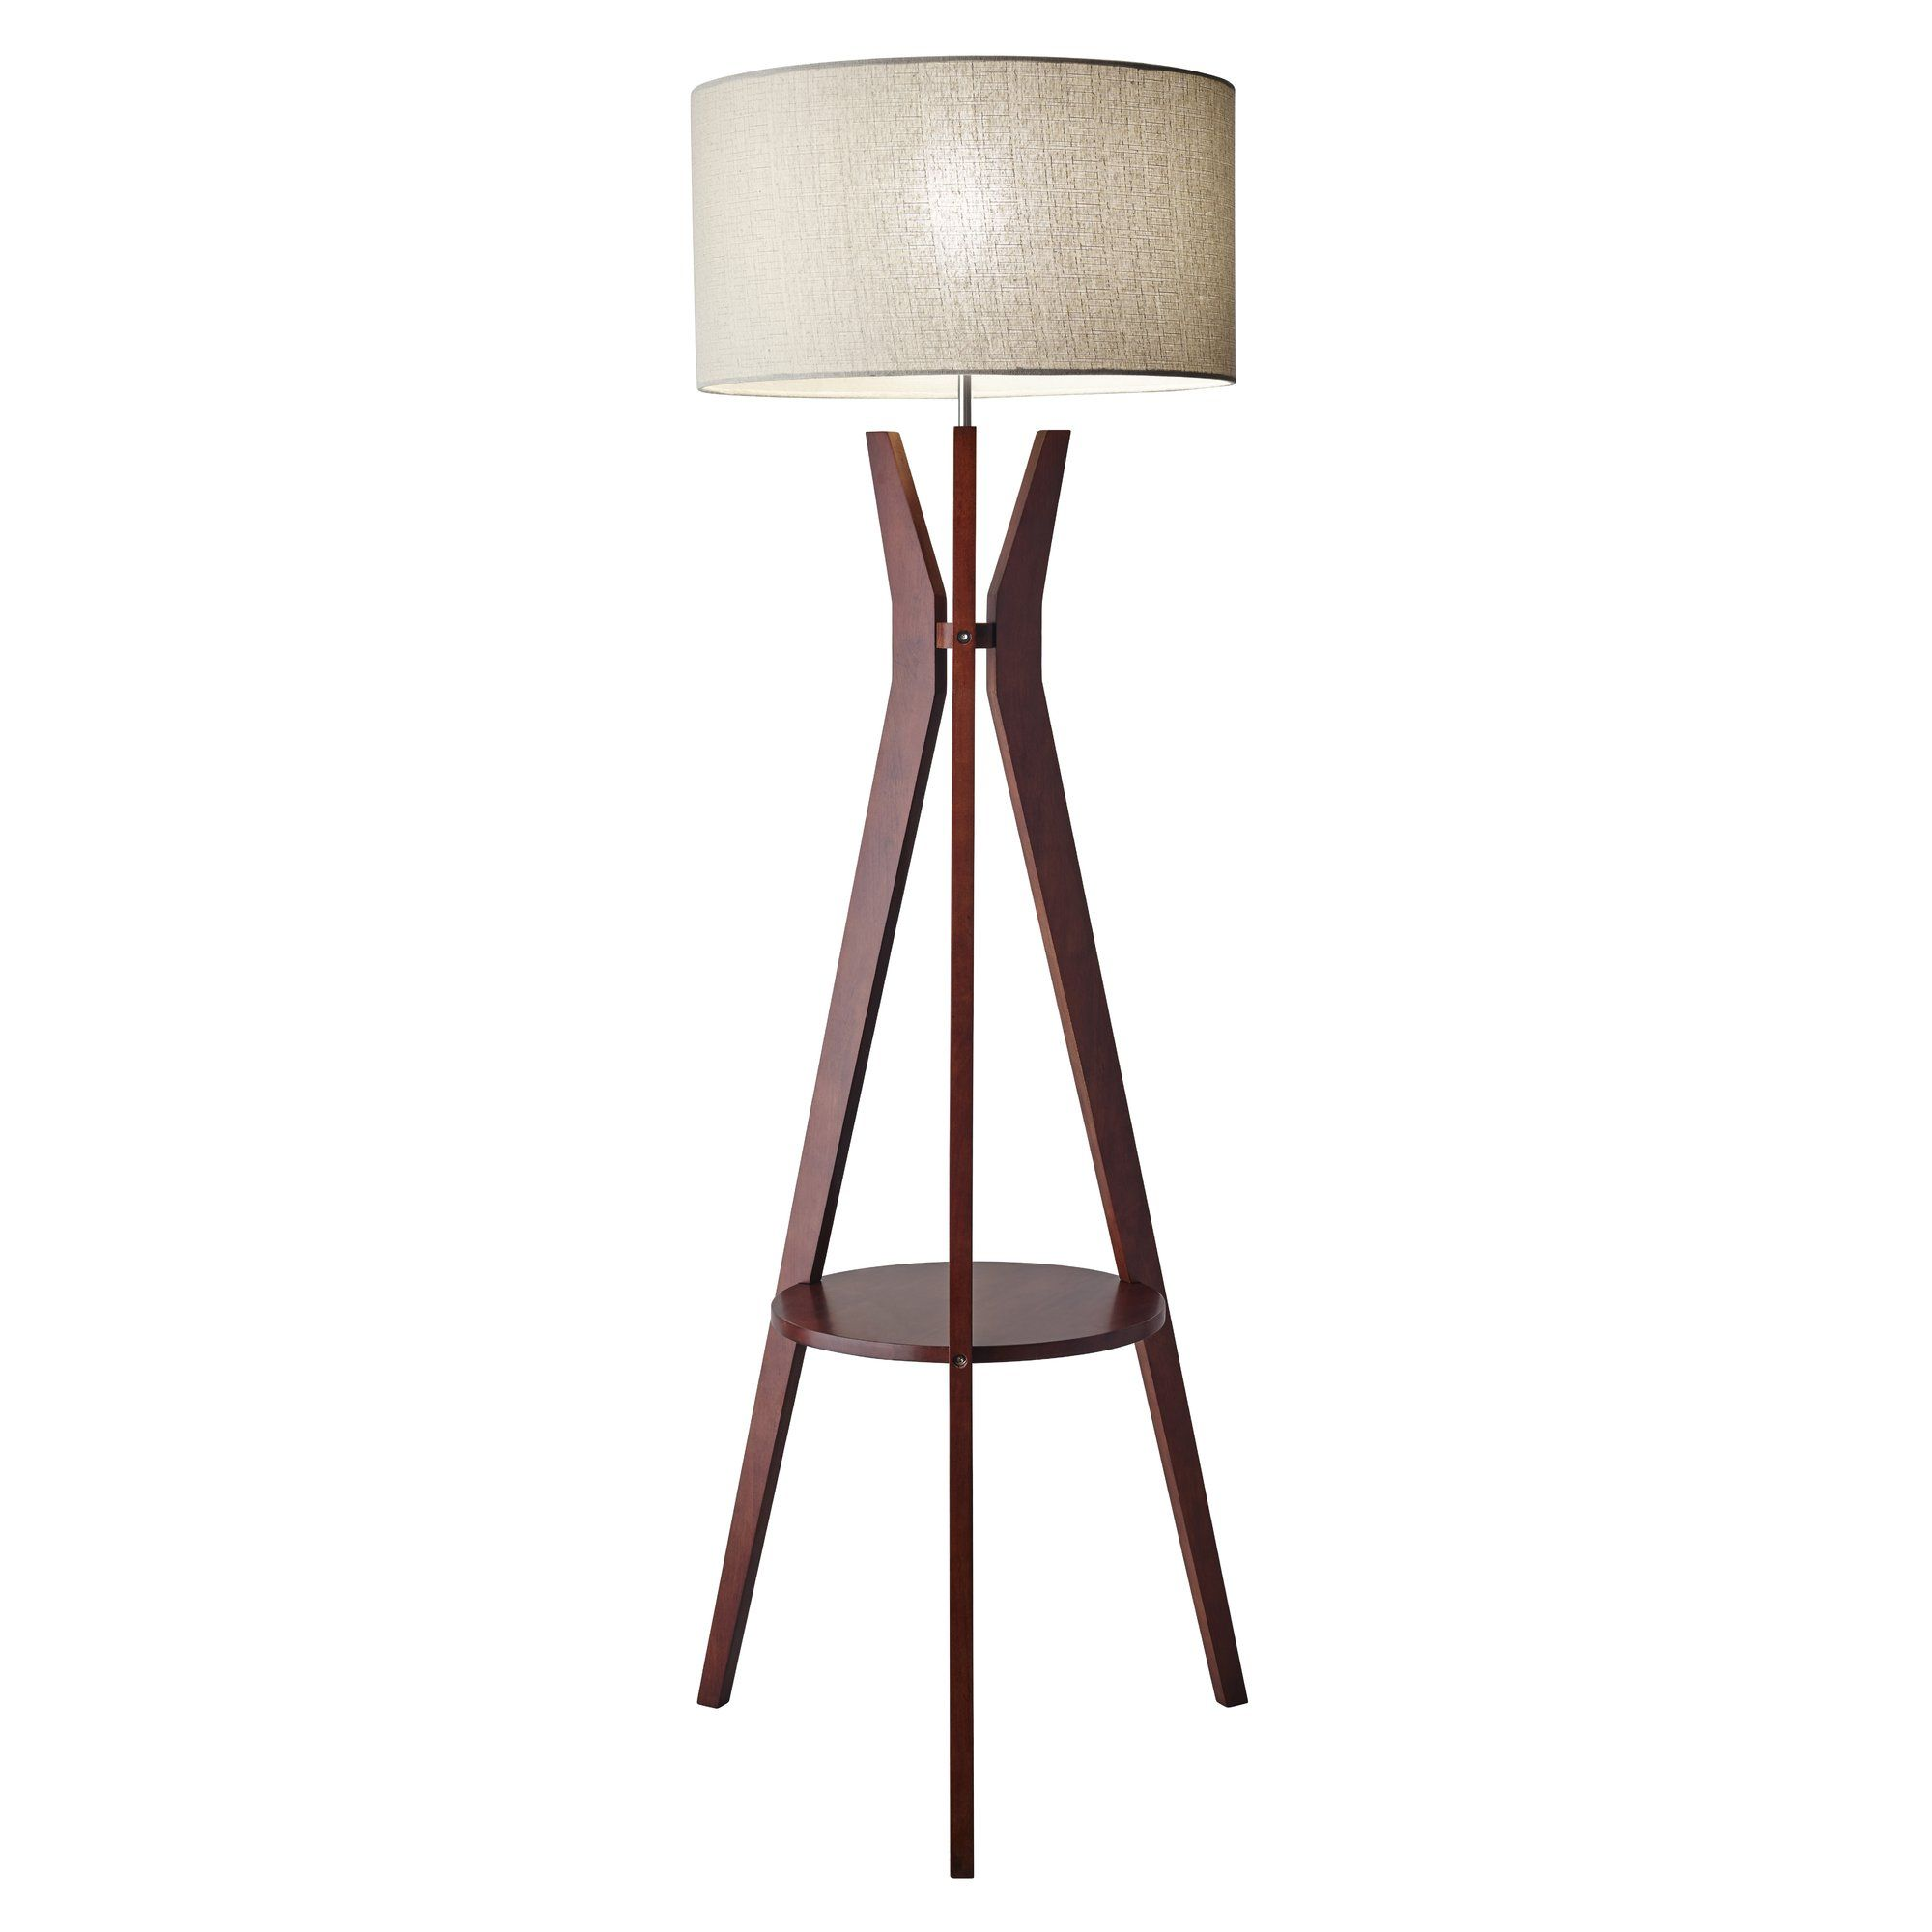 Bedford 595 tripod floor lamp bedford town fc tripod and adesso bedford shelf floor lamp bring functionality and mid mod style to your chair or sofa with the adesso bedford shelf floor lamp mozeypictures Gallery